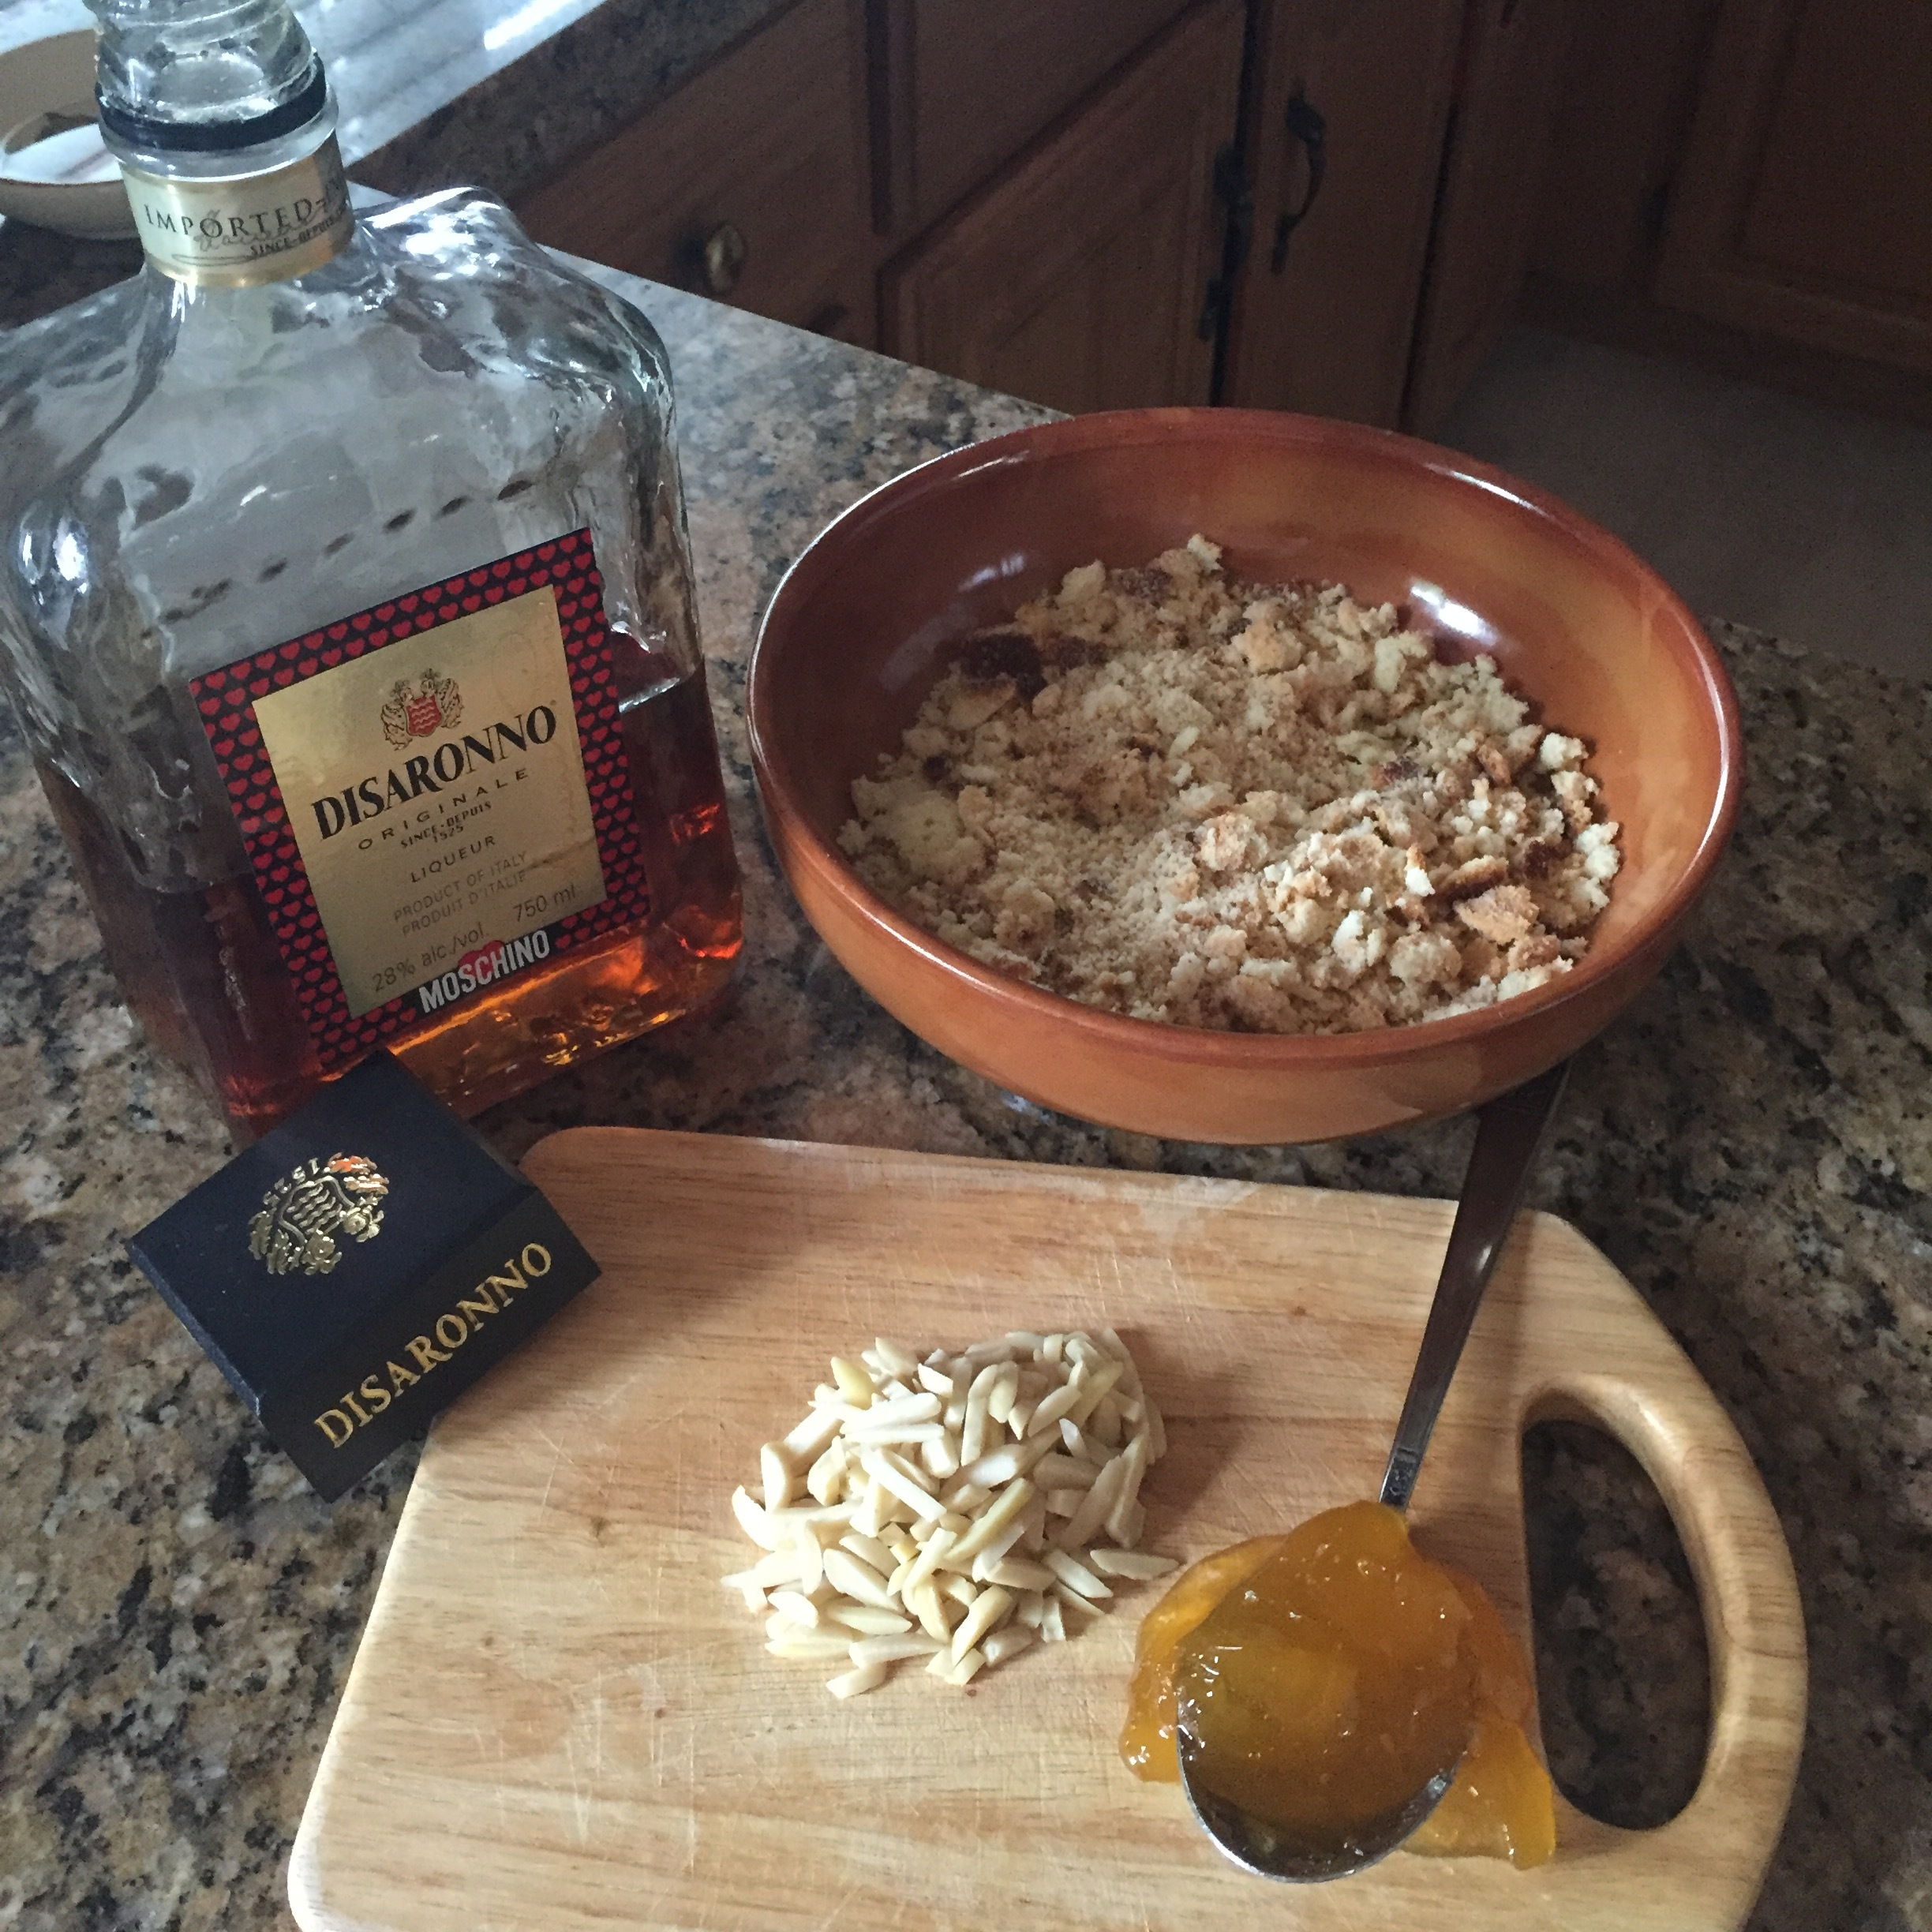 Peach Jam, Amaretto and almonds are added to the crumbs.